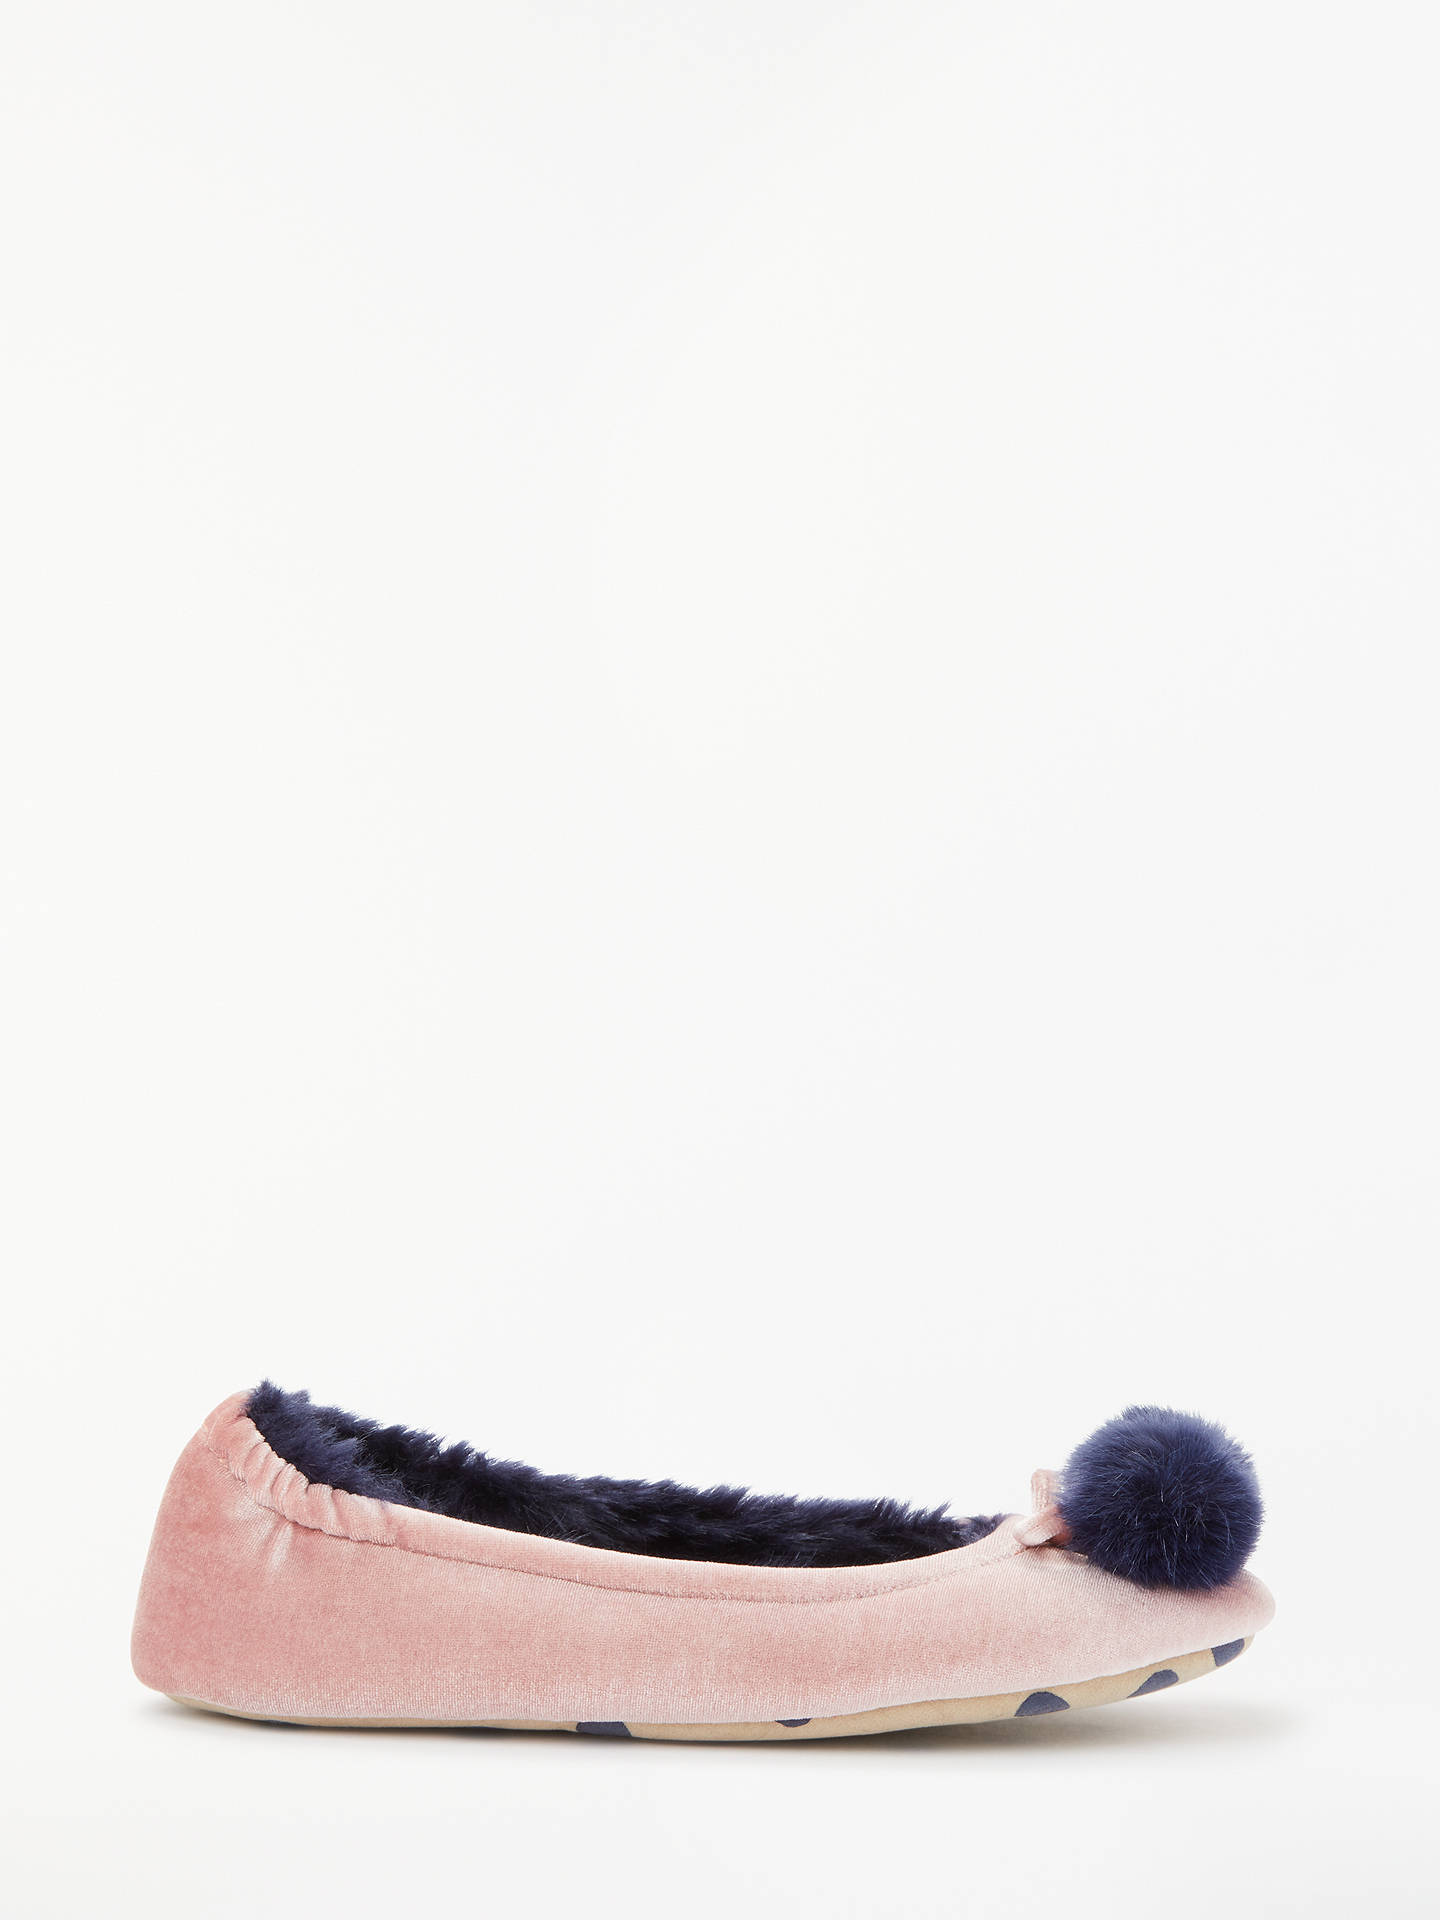 BuyBoden Pompom Fluffy Ballerina Slippers, Milkshake, 8 Online at johnlewis.com